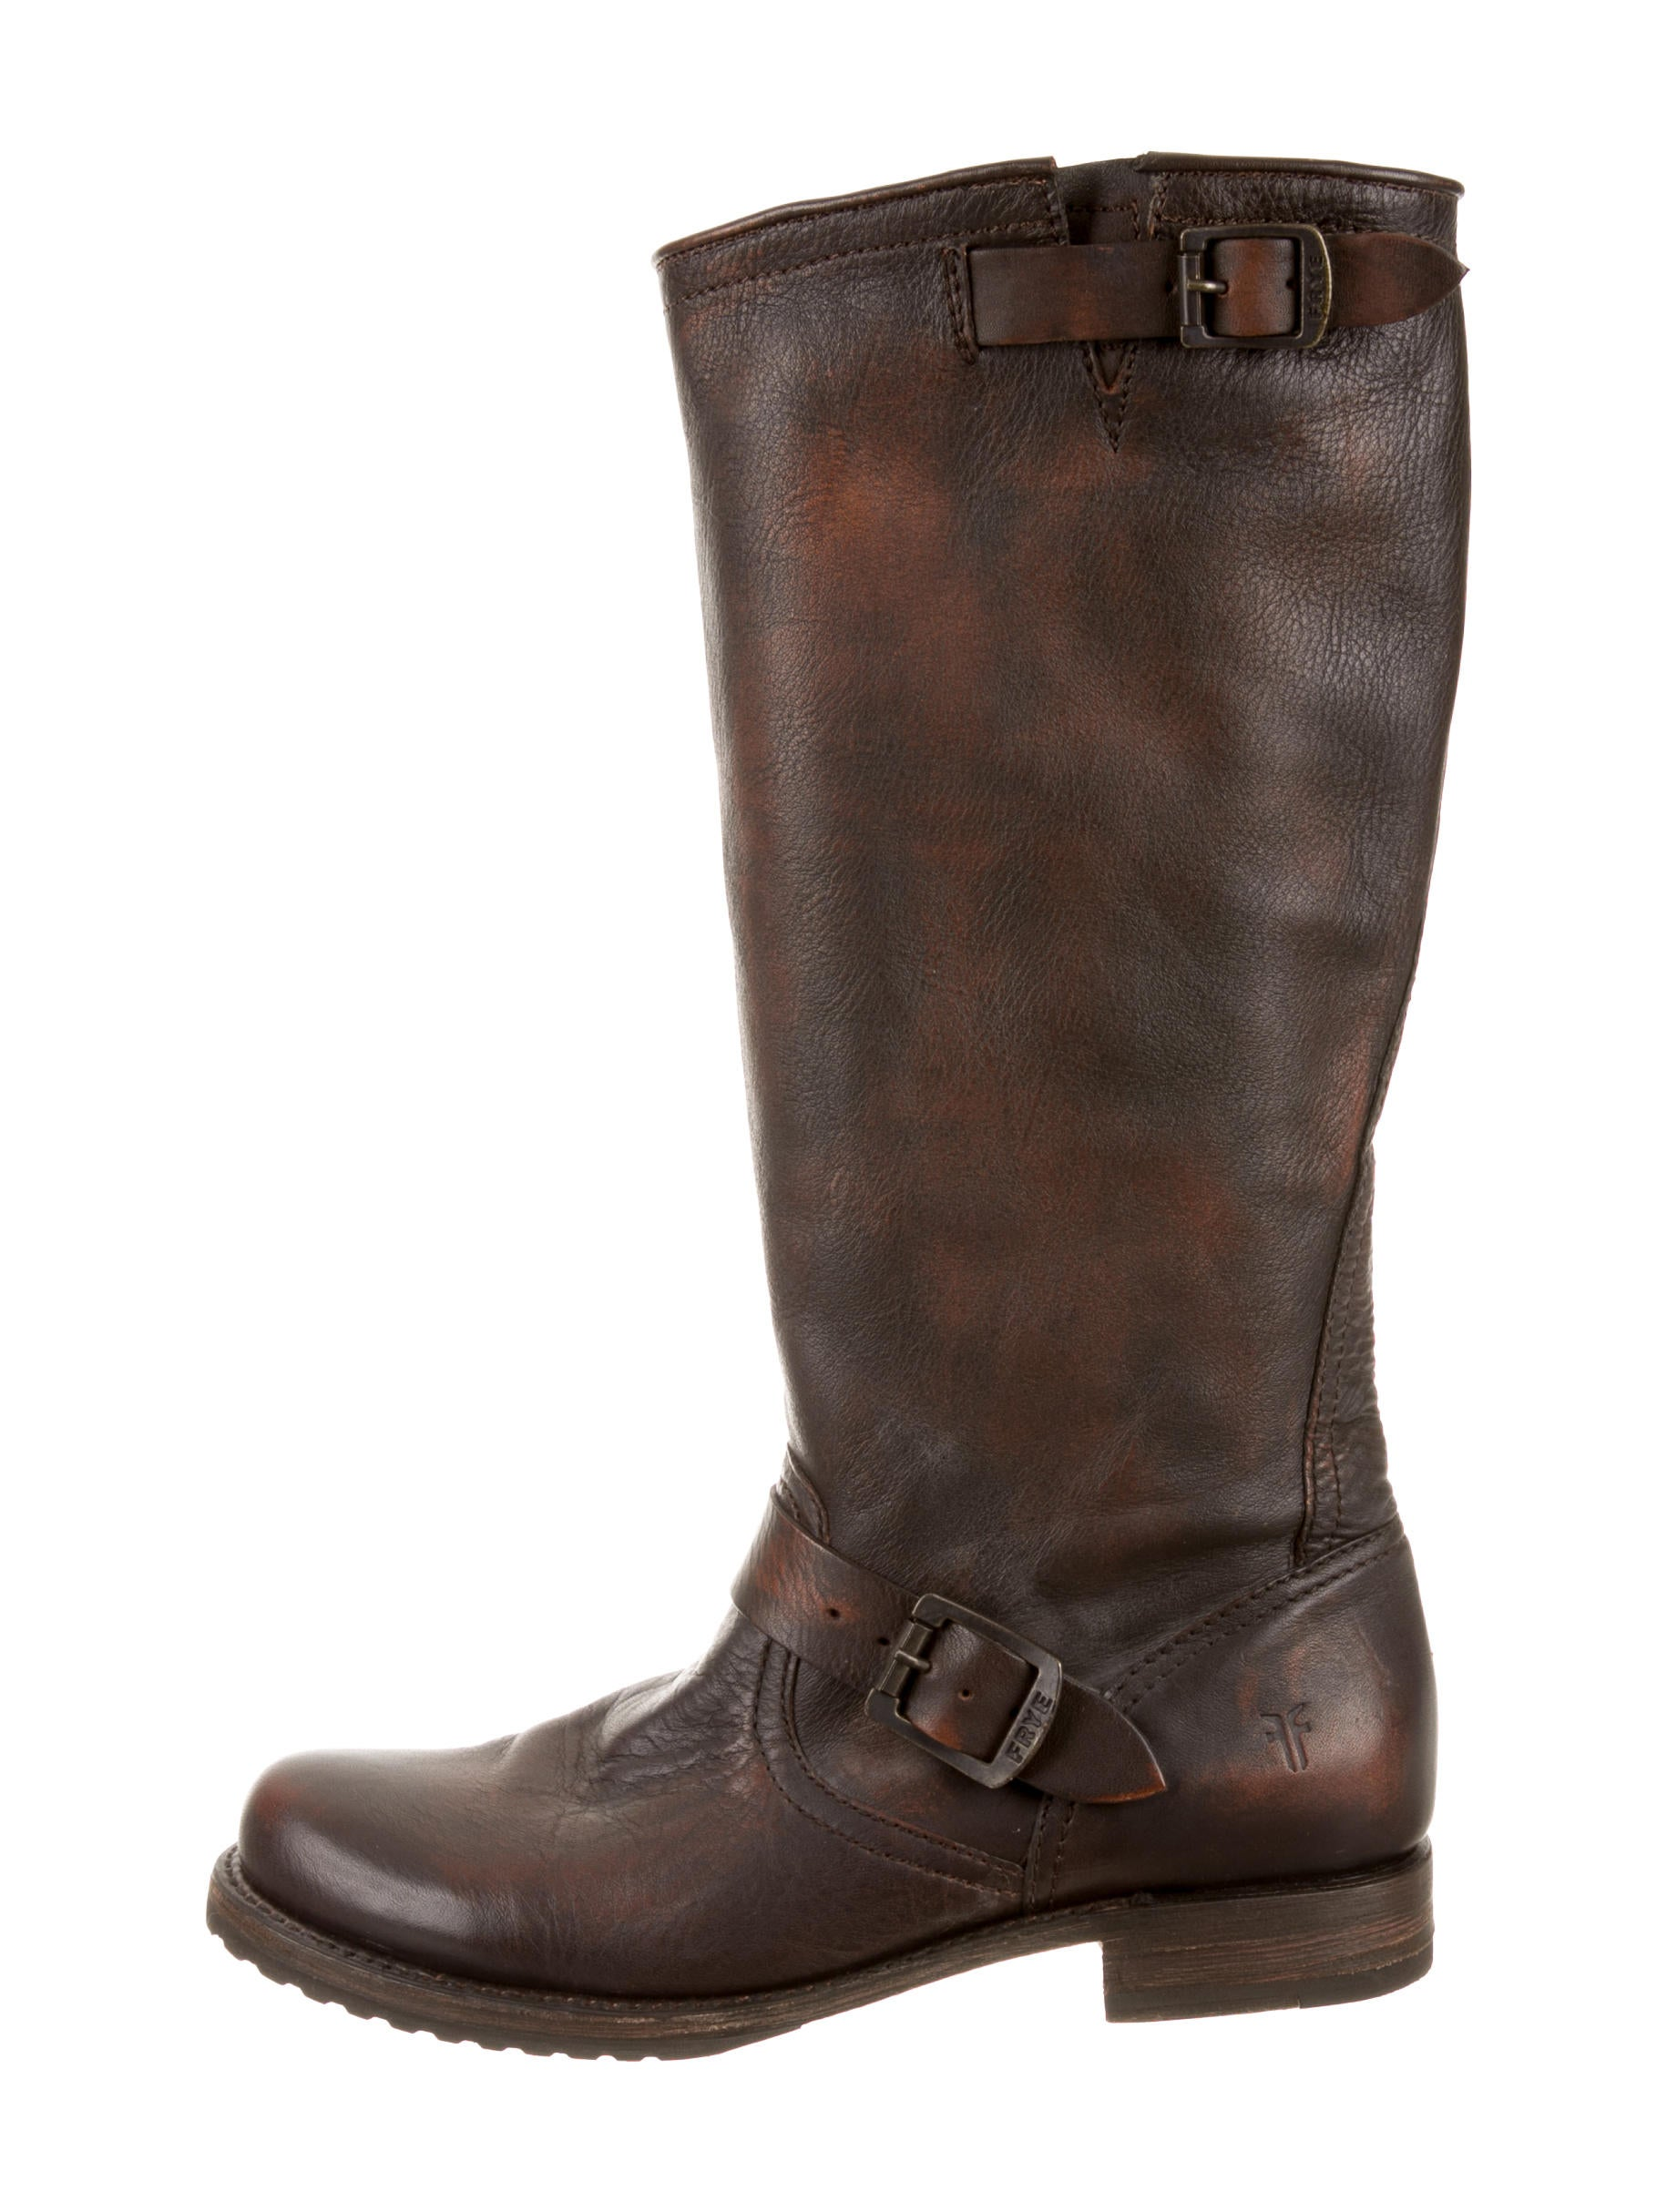 frye knee high boots shoes wf820338 the realreal